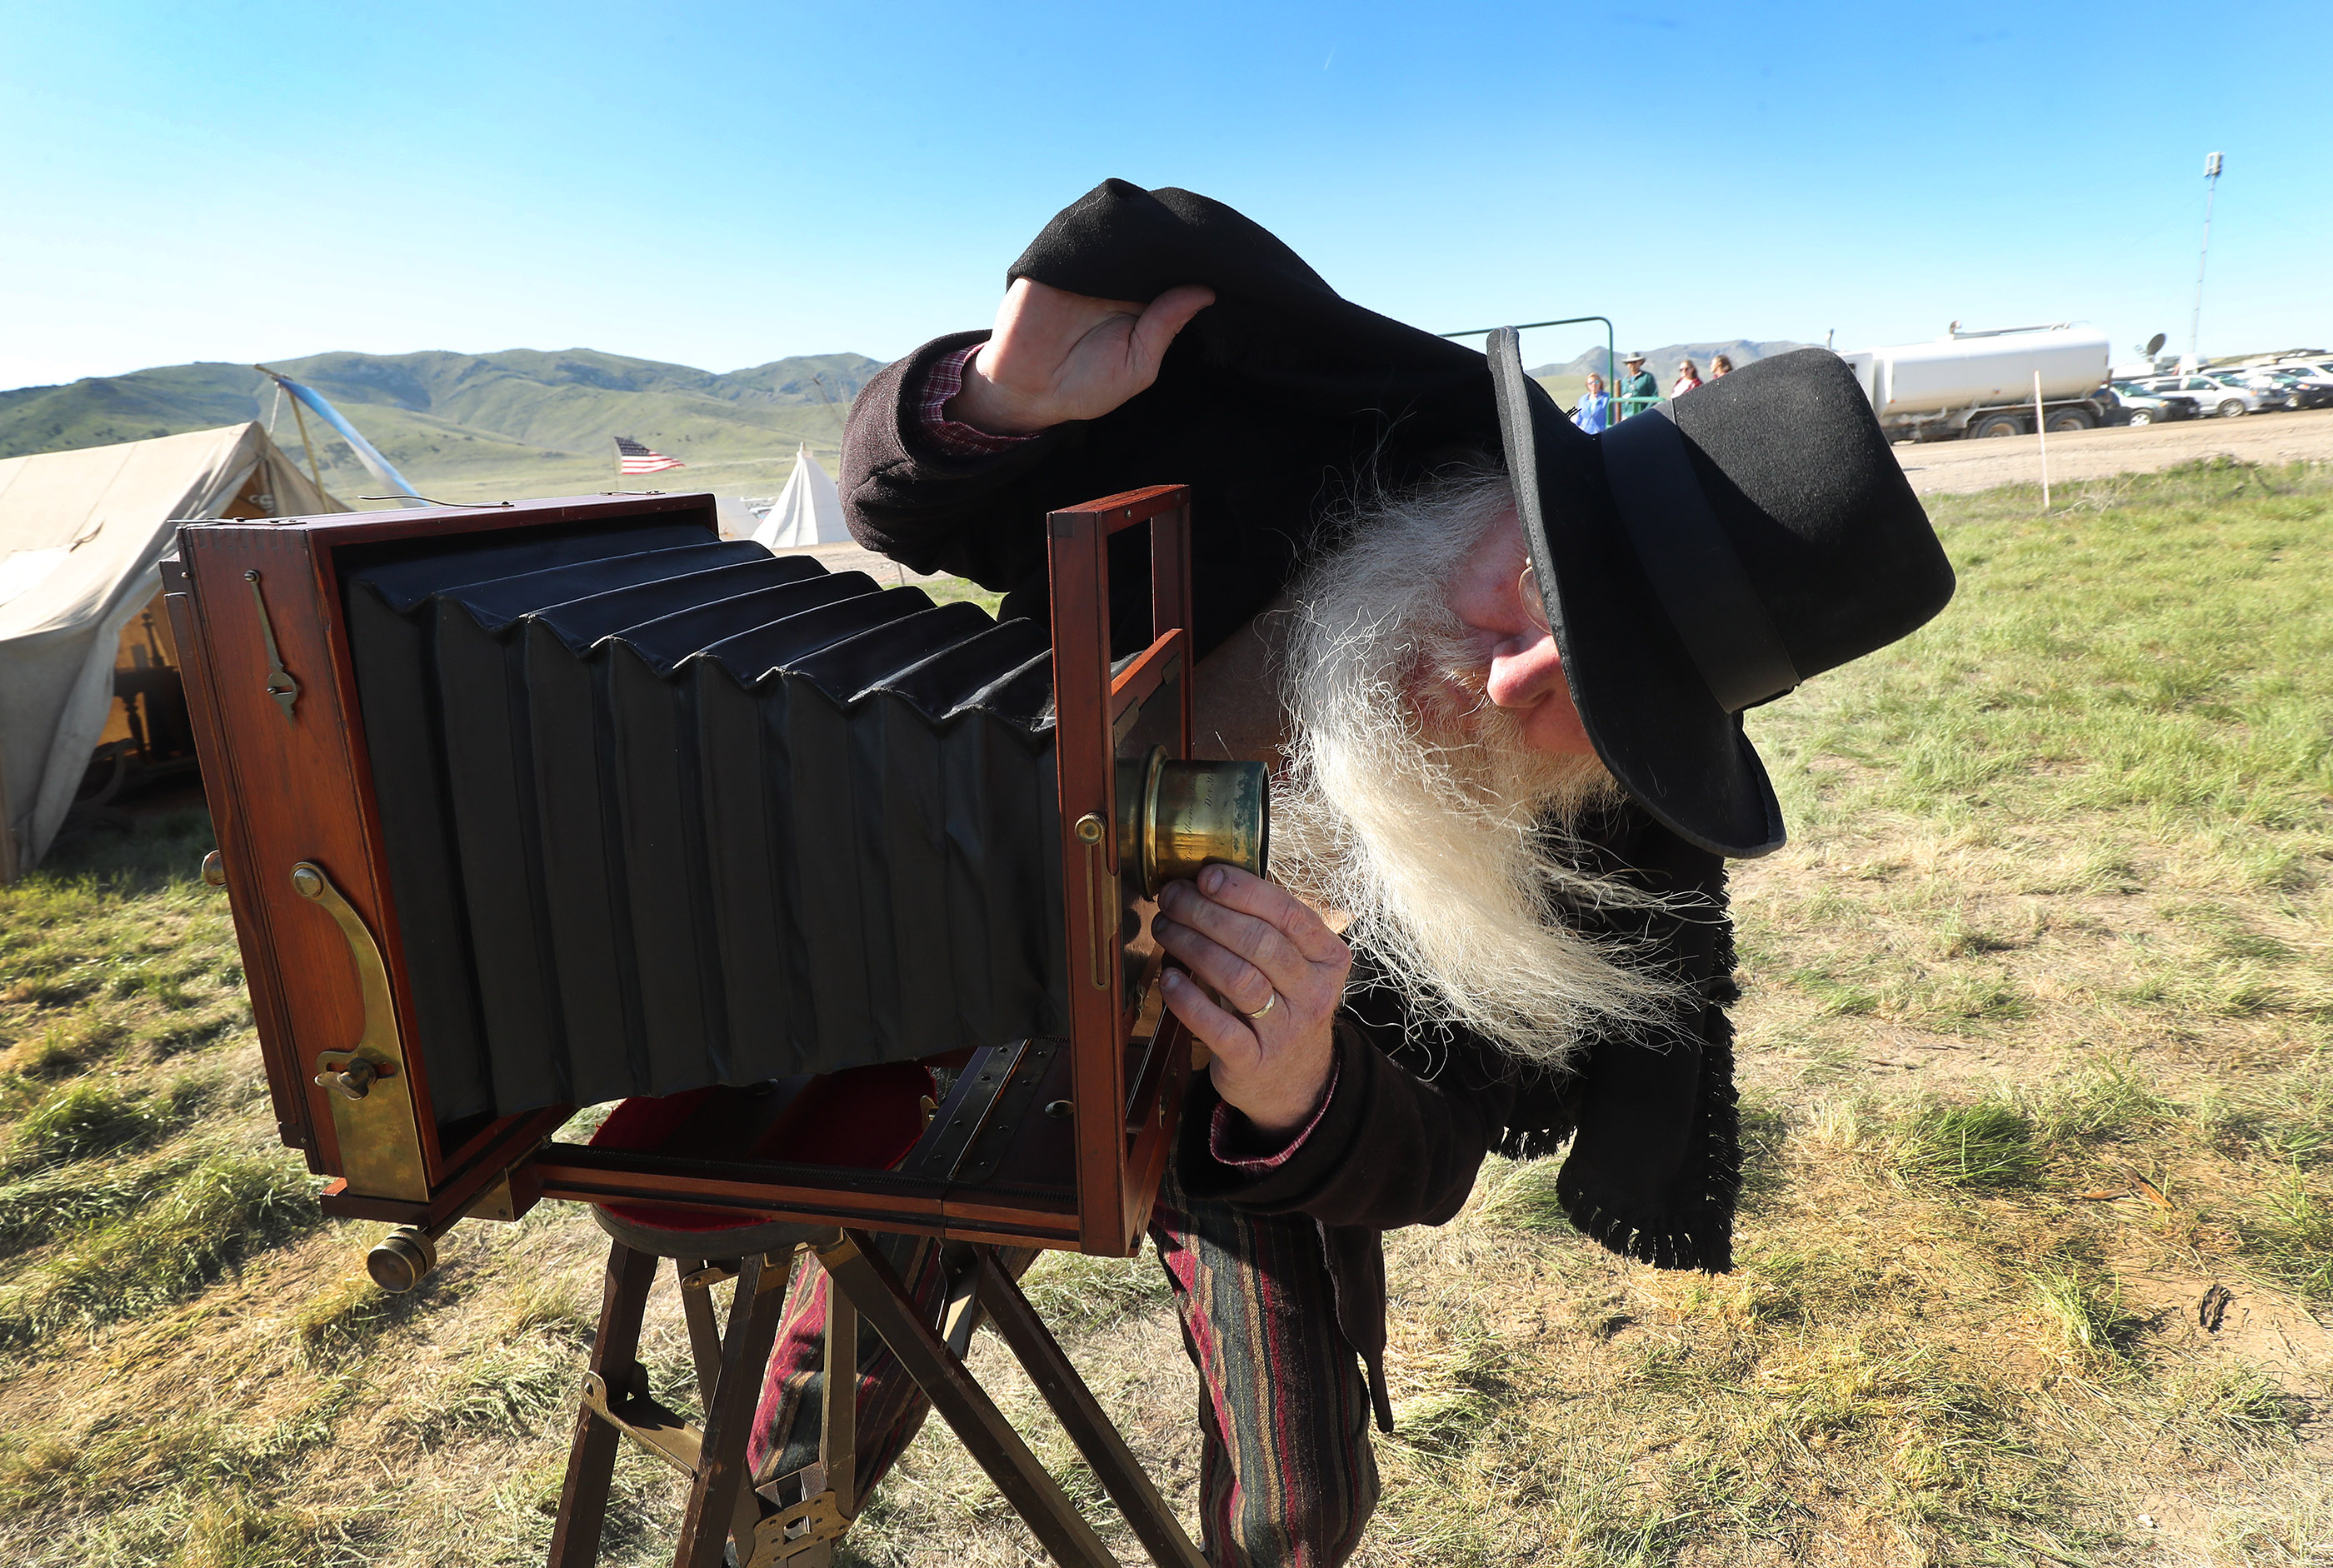 Vintage photographer Mark Brown takes a photo during the 150th anniversary celebration at the Golden Spike National Historical Park at Promontory Summit on Friday, May 10, 2019.